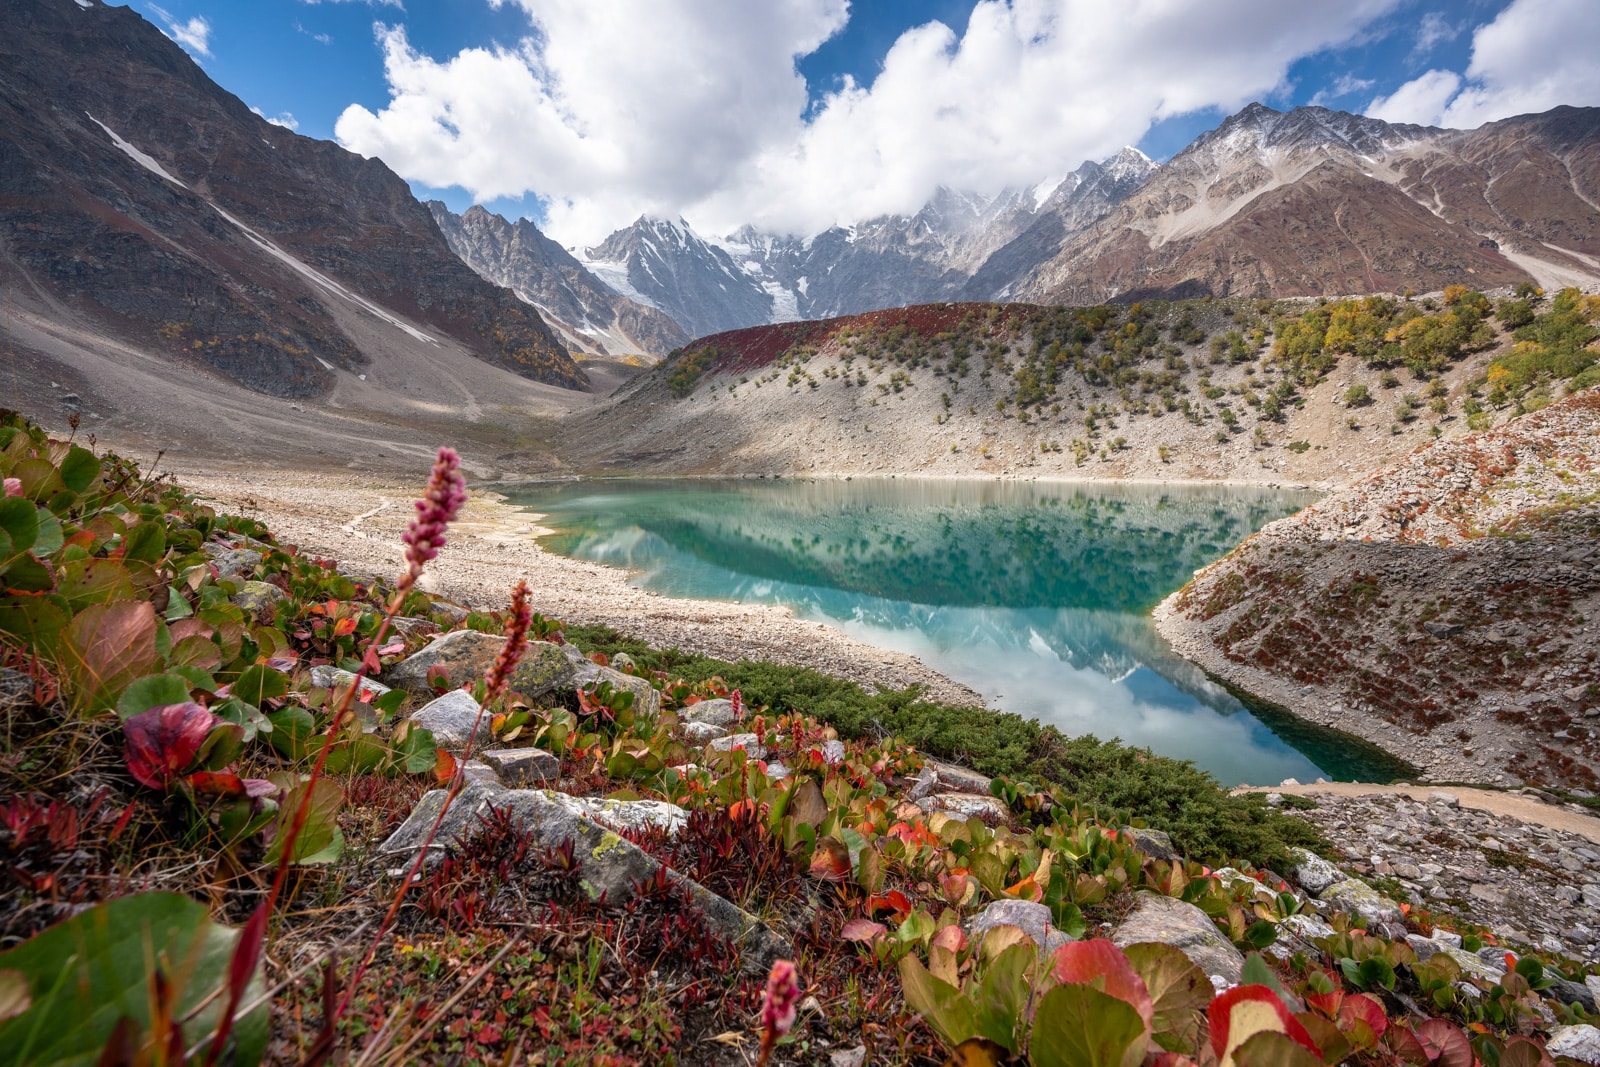 Wild flowers by Rama Lake in Astore, Pakistan